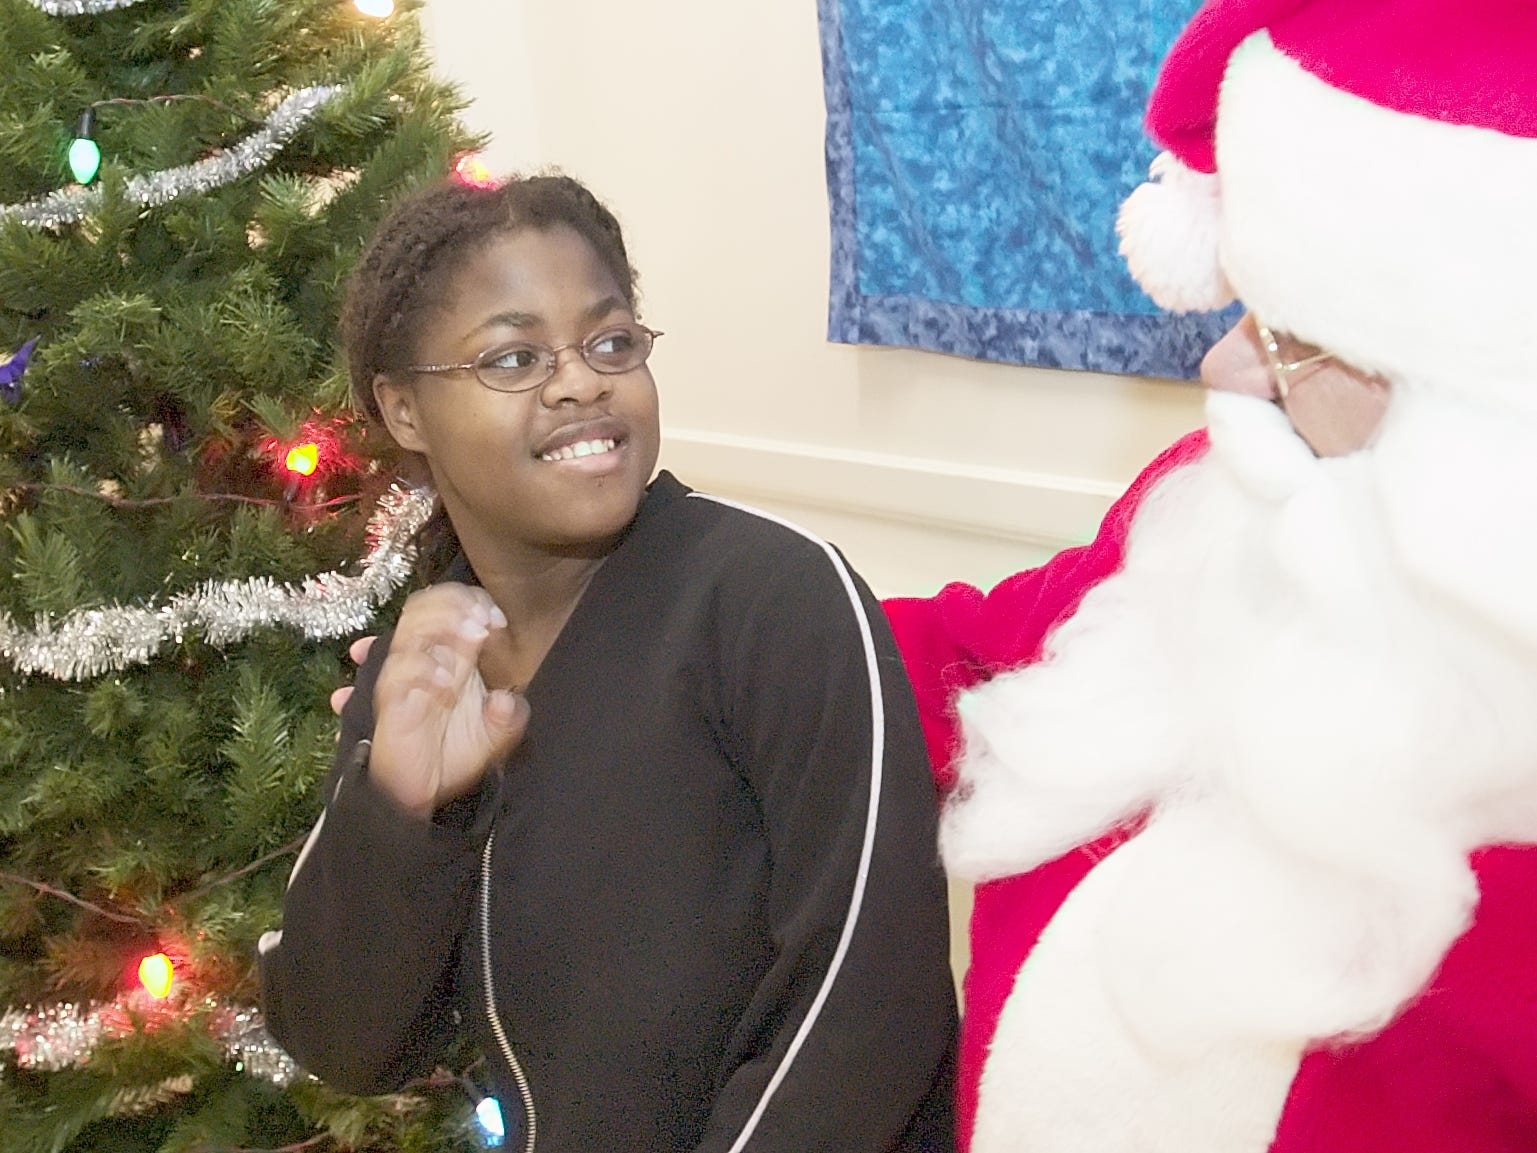 MATTHEW HINTON / Journal Staff  Aziza Speight, 16, signs with Santa Claus, Charles Sundheimer, who is deaf, during a Christmas party especially for American Sign Language users, and for those wanting to learn in 2005. Though not deaf herself, Speight has a friend and a cousin who use sign language.